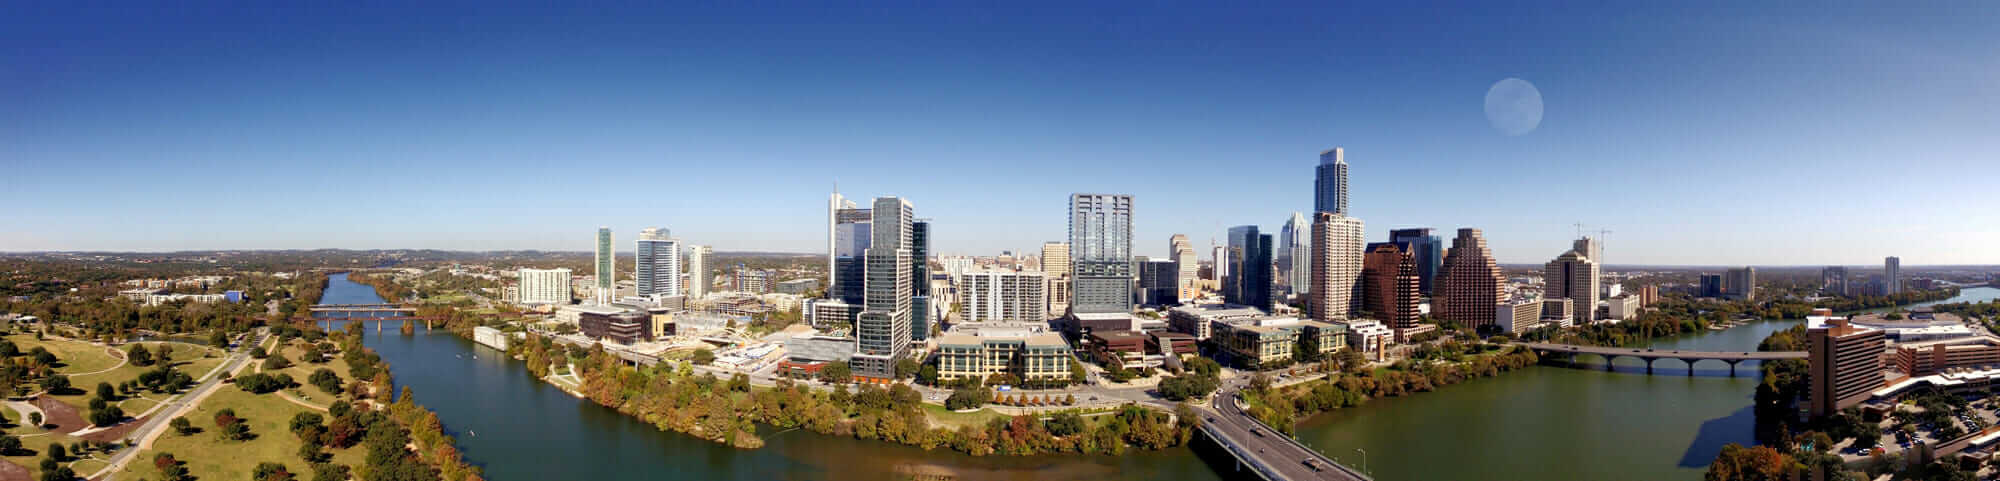 A panoramic view of downtown Austin, Texas.